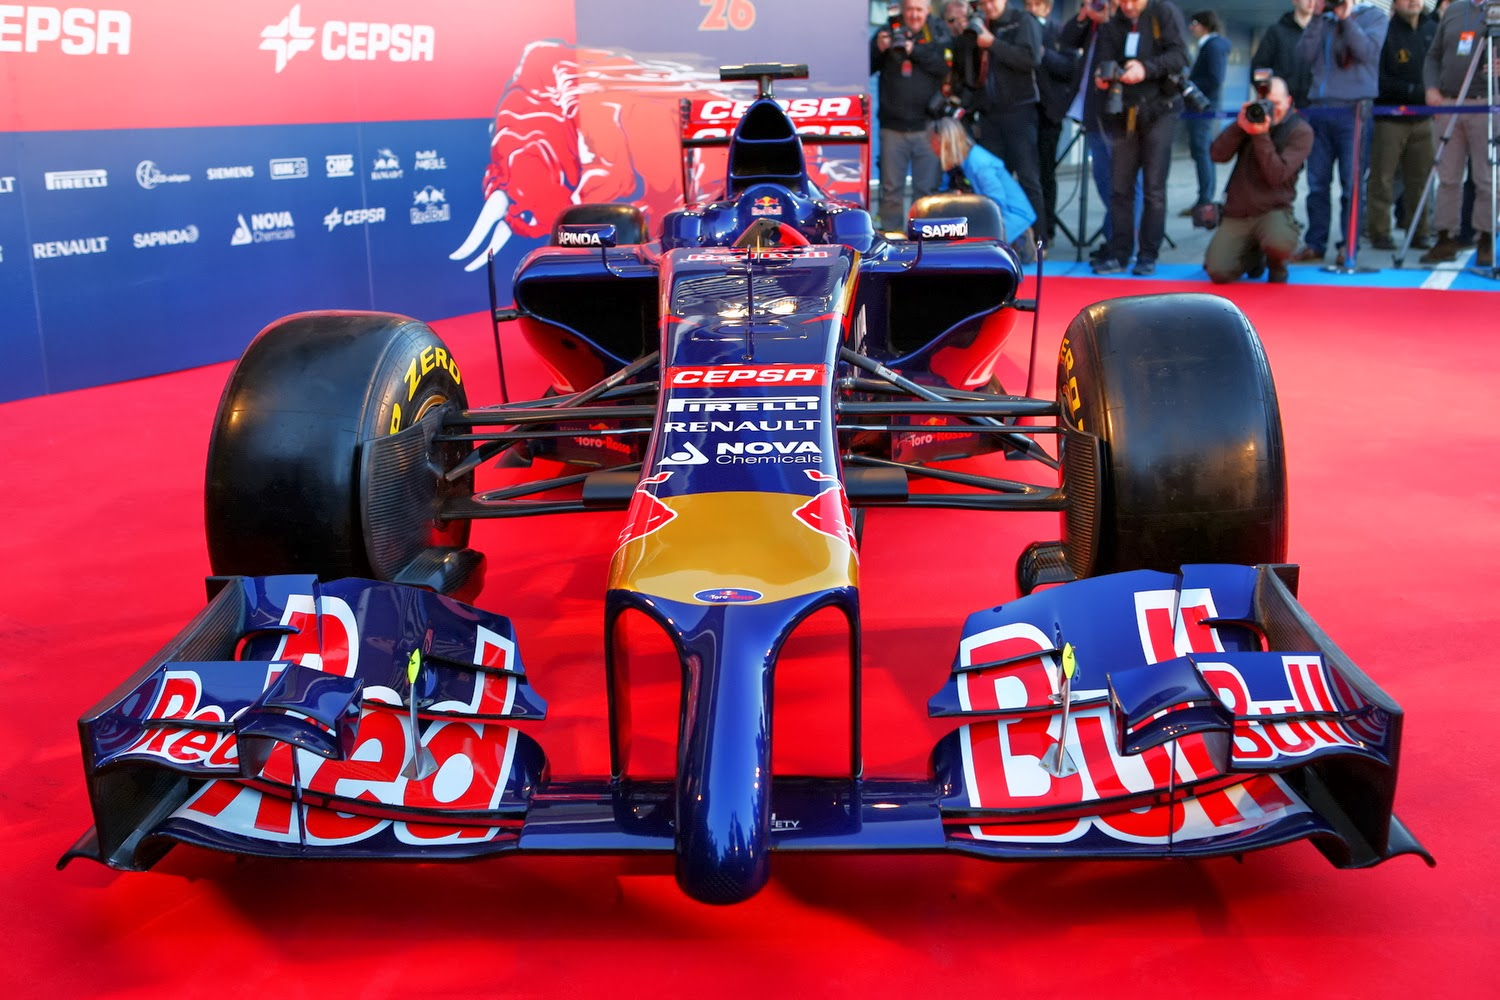 2014 CARS: TORO ROSSO UNVEILED STR9 - STEP FORWARD WITH ...